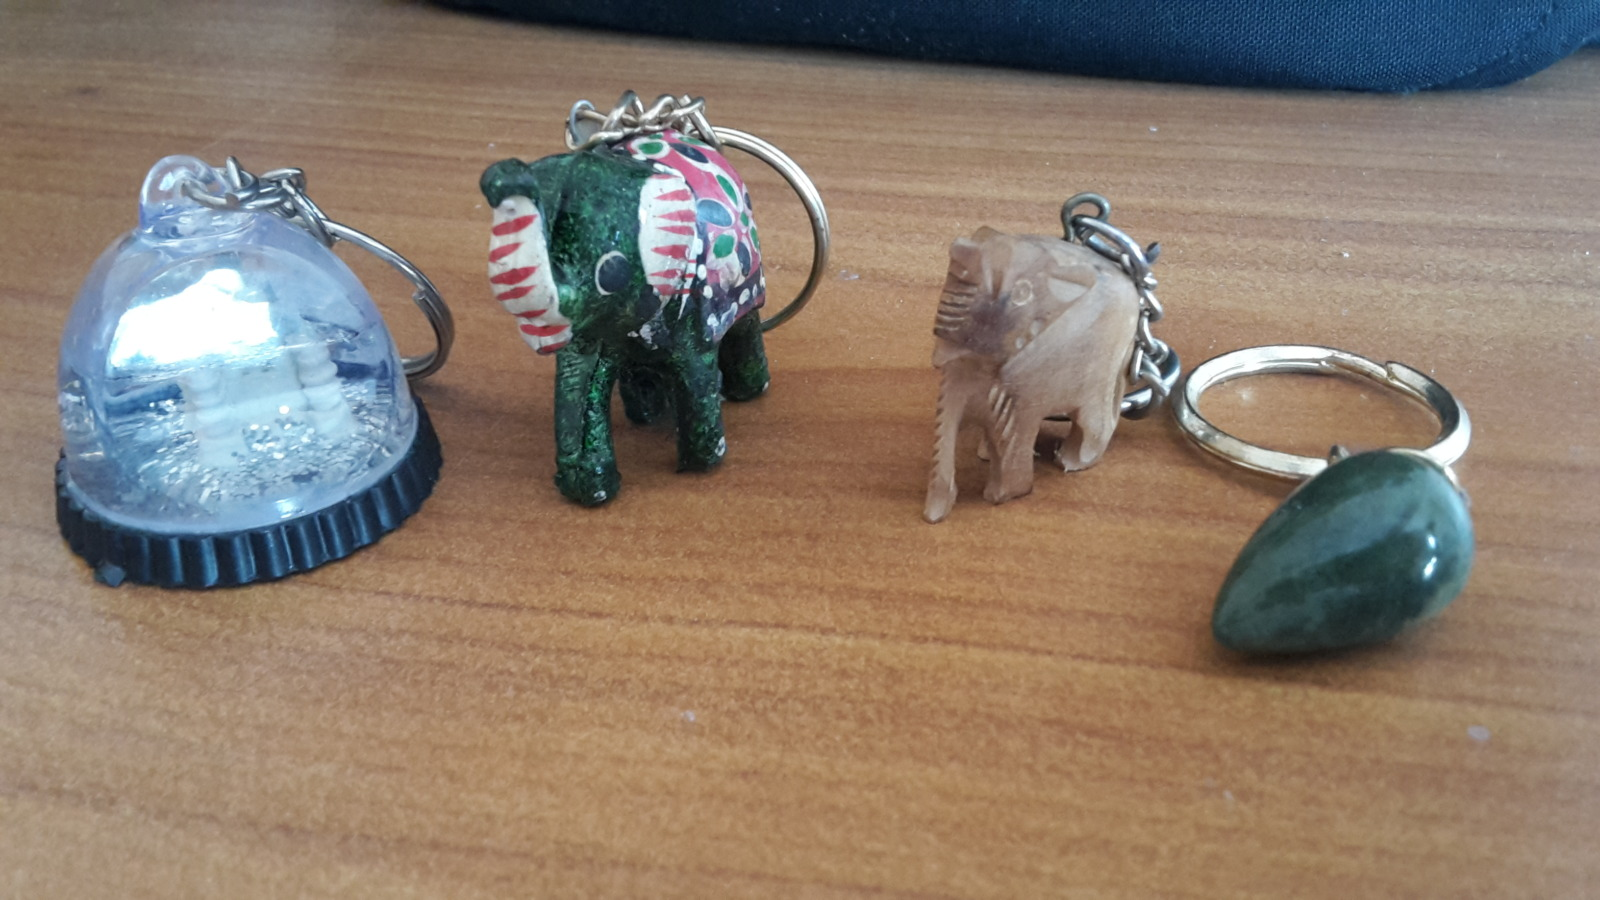 Trinkets given to me by Kalpana, the wife of the owner of the hotel Ganapati Palace in Dhule.